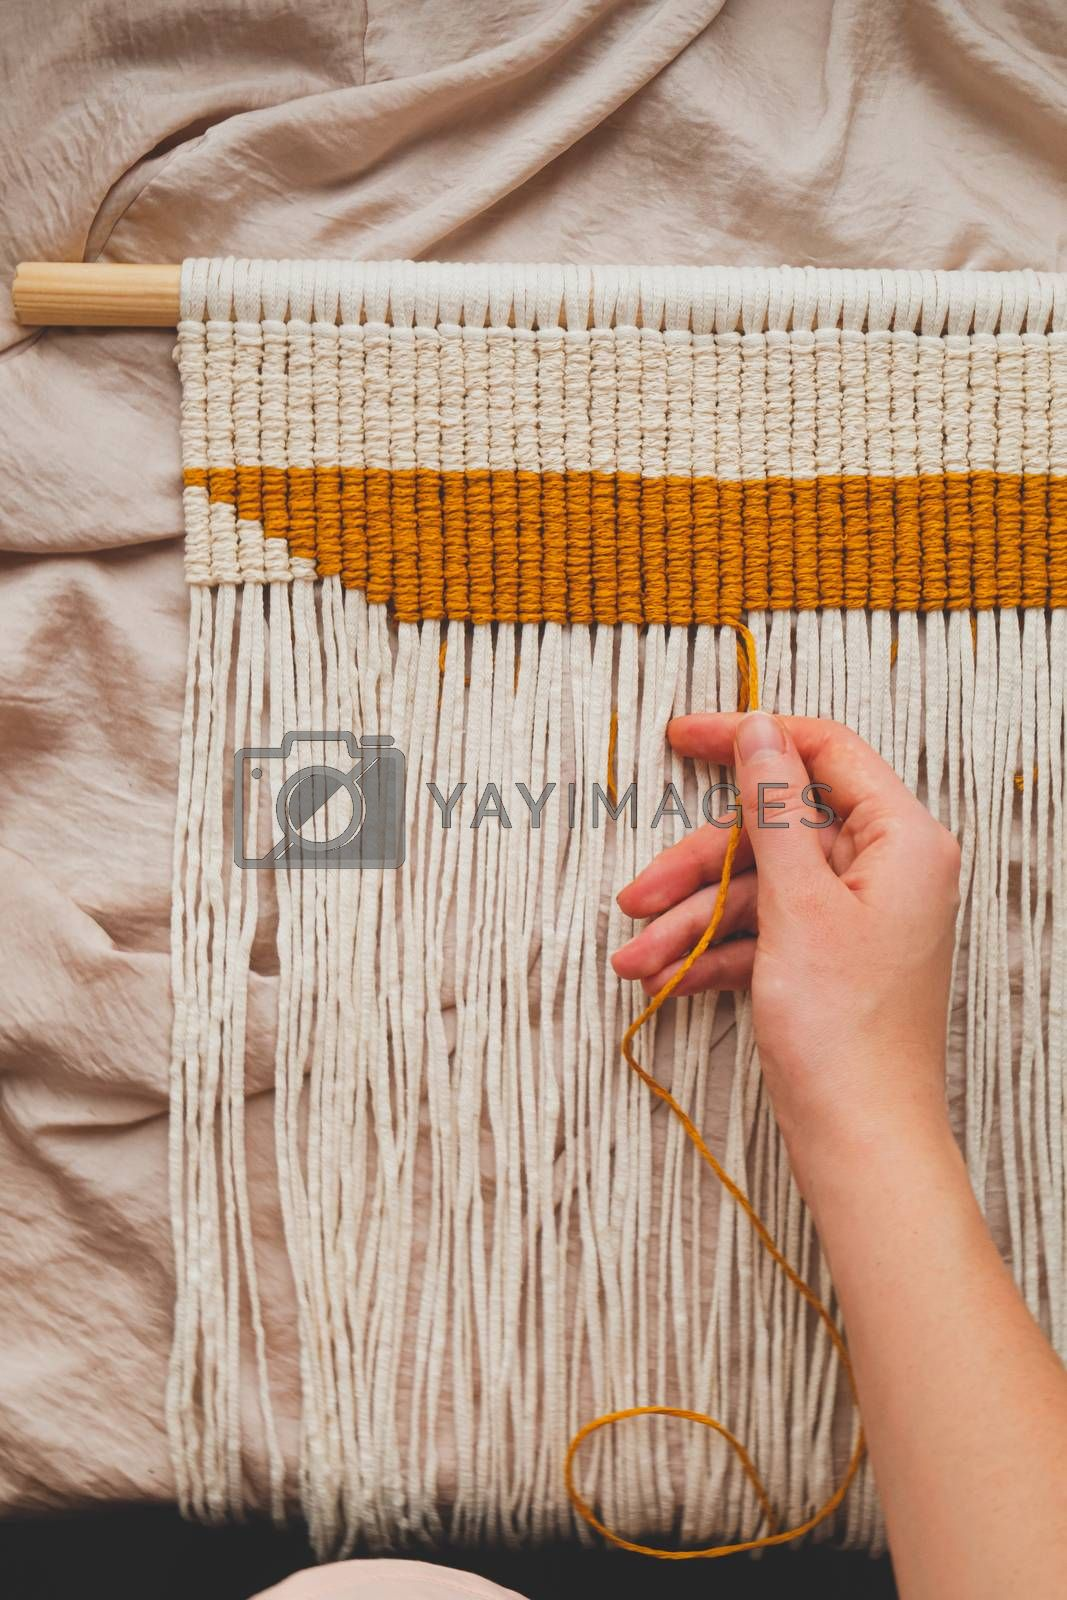 Handcrafted macrame wall hanging, close-up view. Human hand making a piece of decor